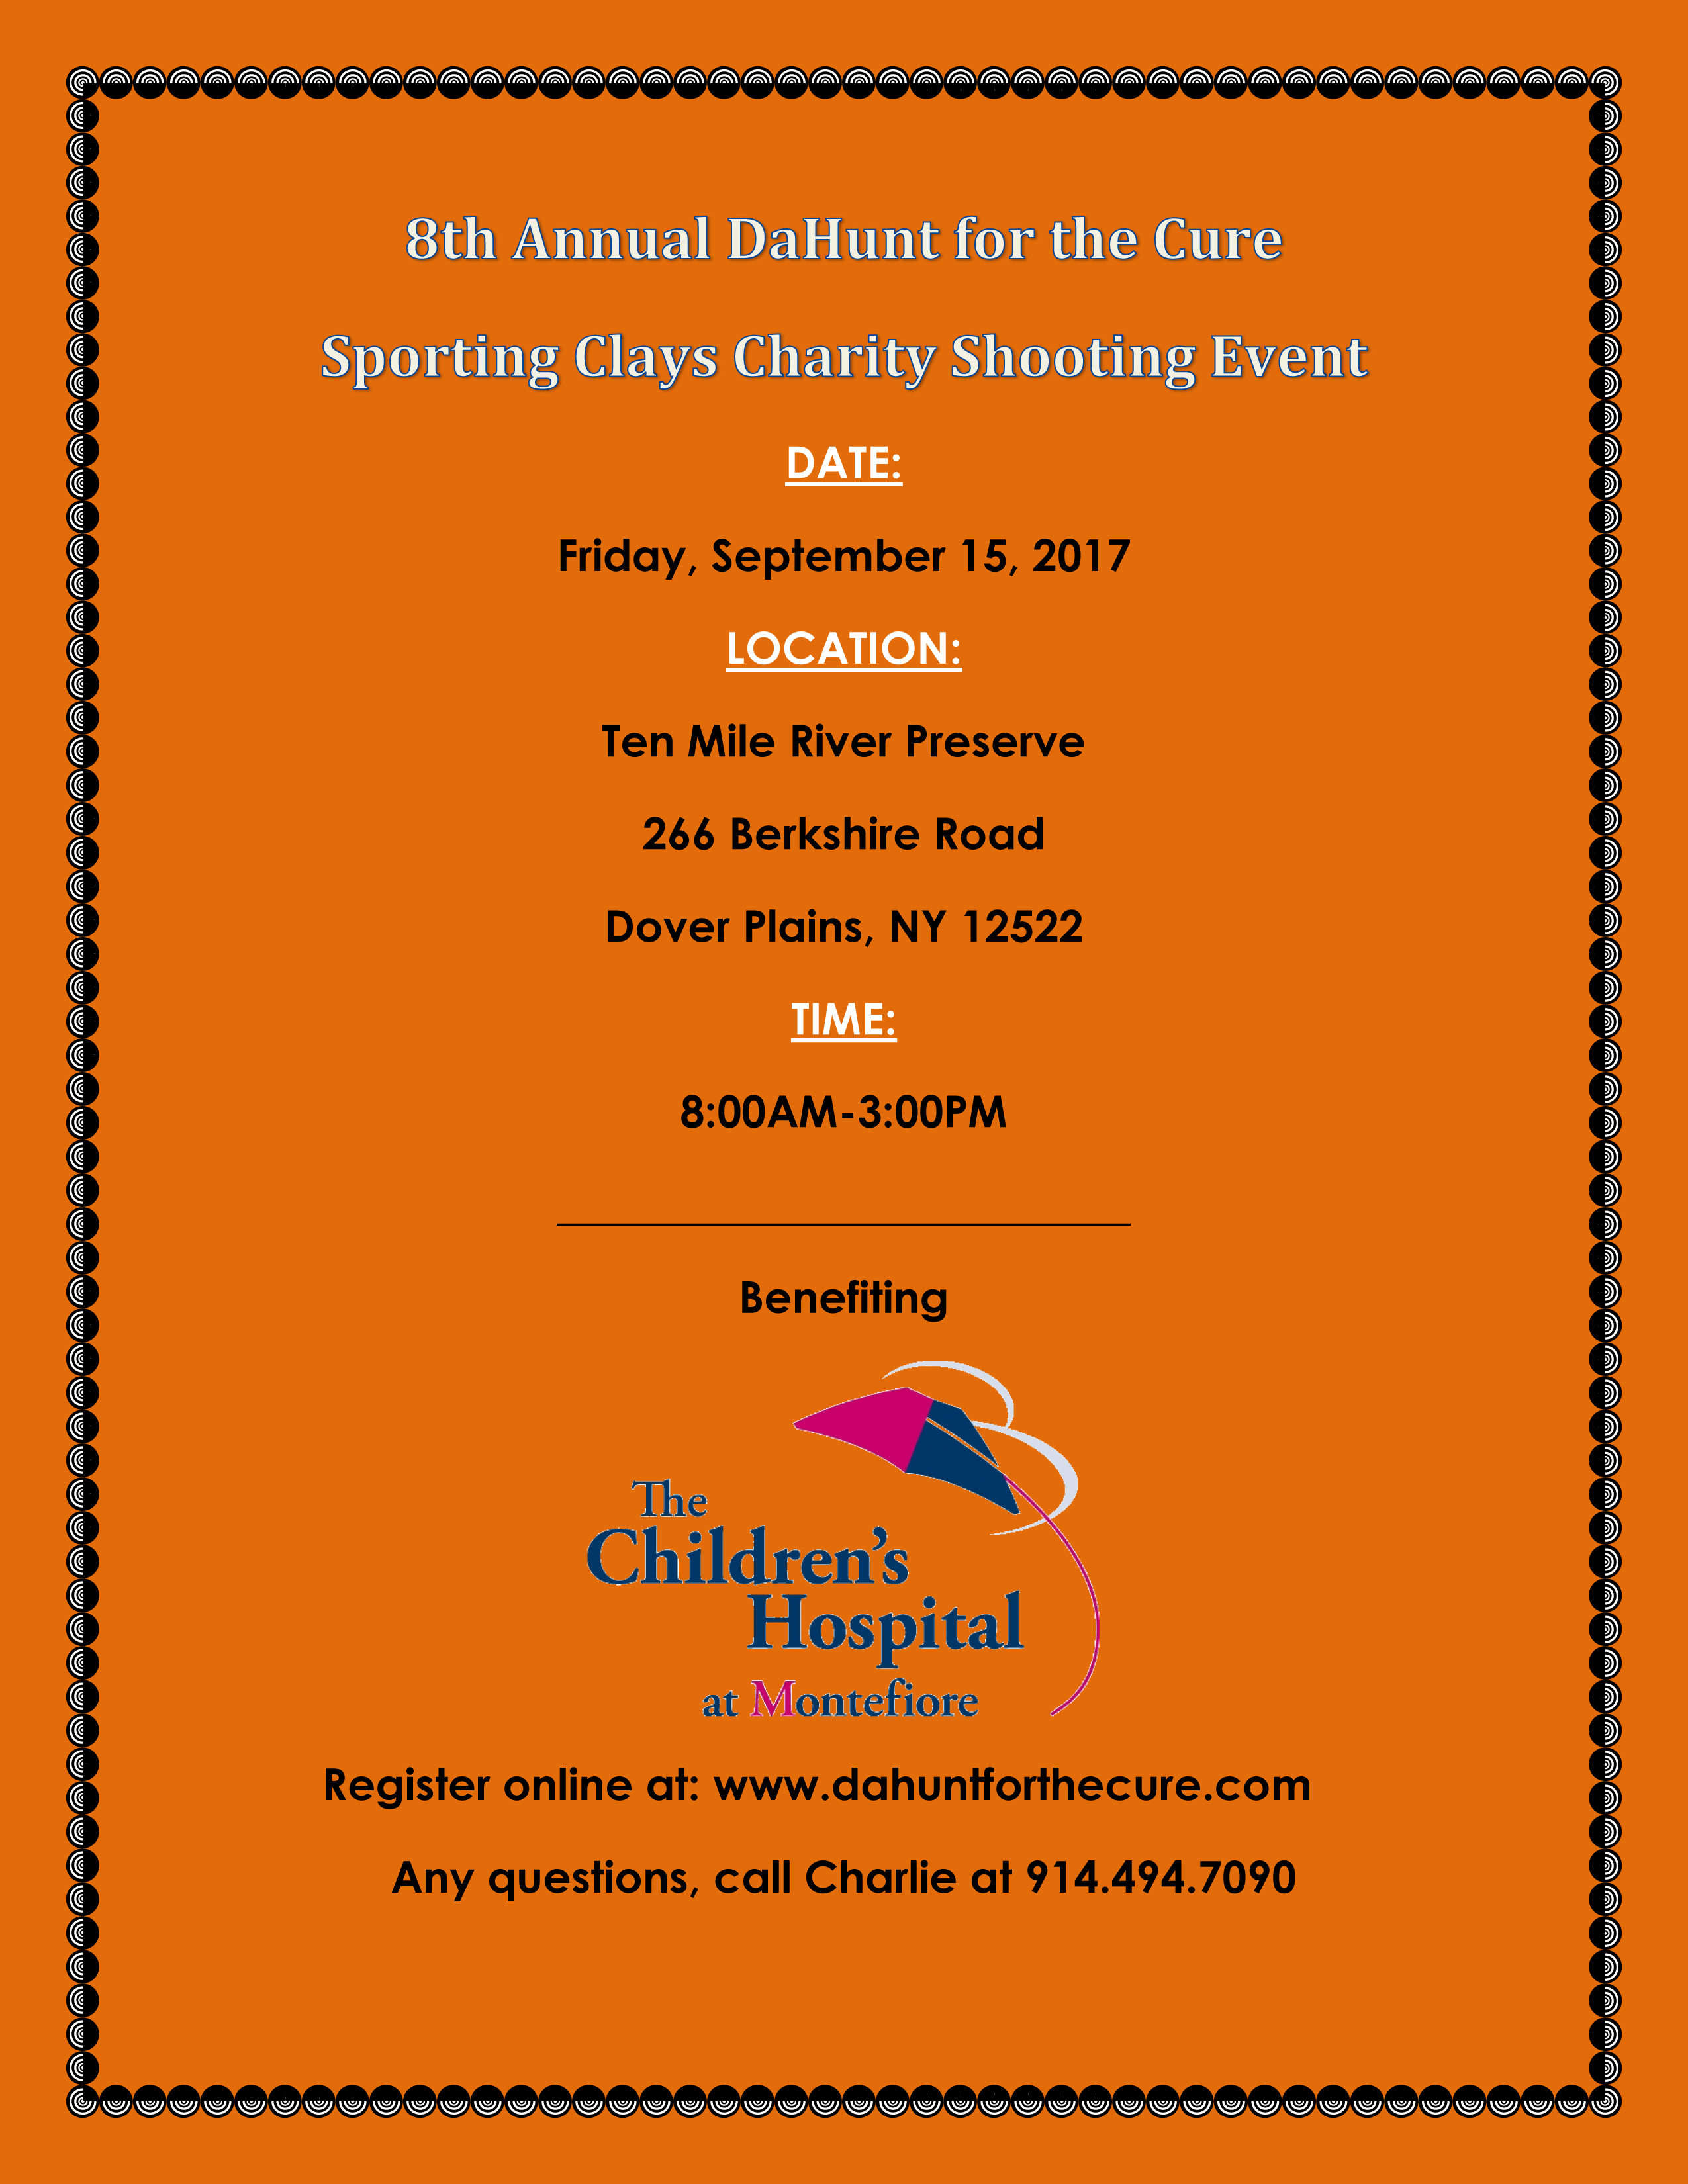 2016 DaHunt for the 7th Annual Sporting Clays Charity Shooting Event